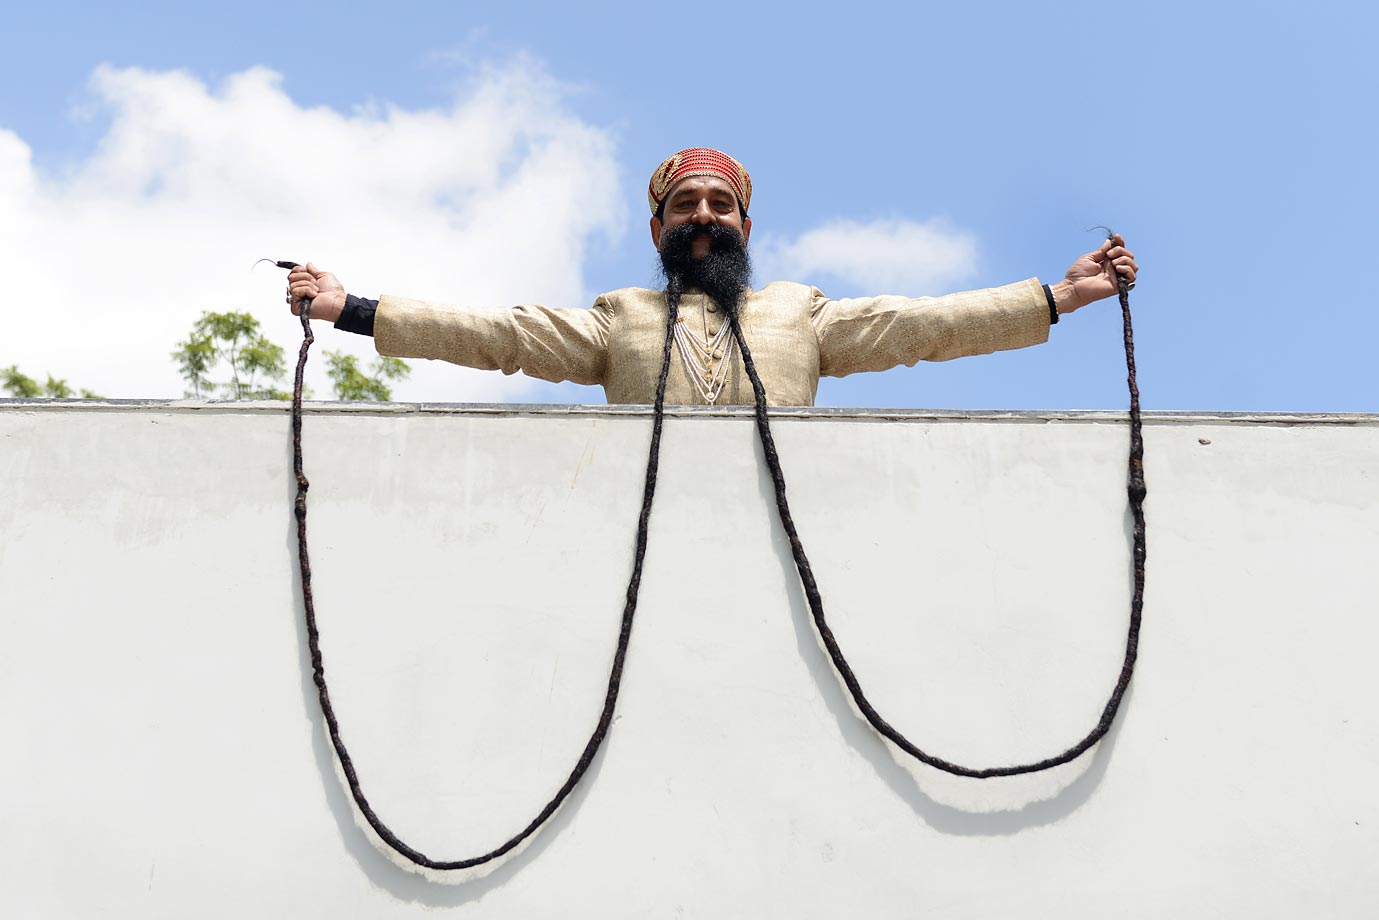 Ram Singh Chauhan (61) displays his approximately 18-foot-long moustache, which has been recognized by the Guinness Book of World Records.